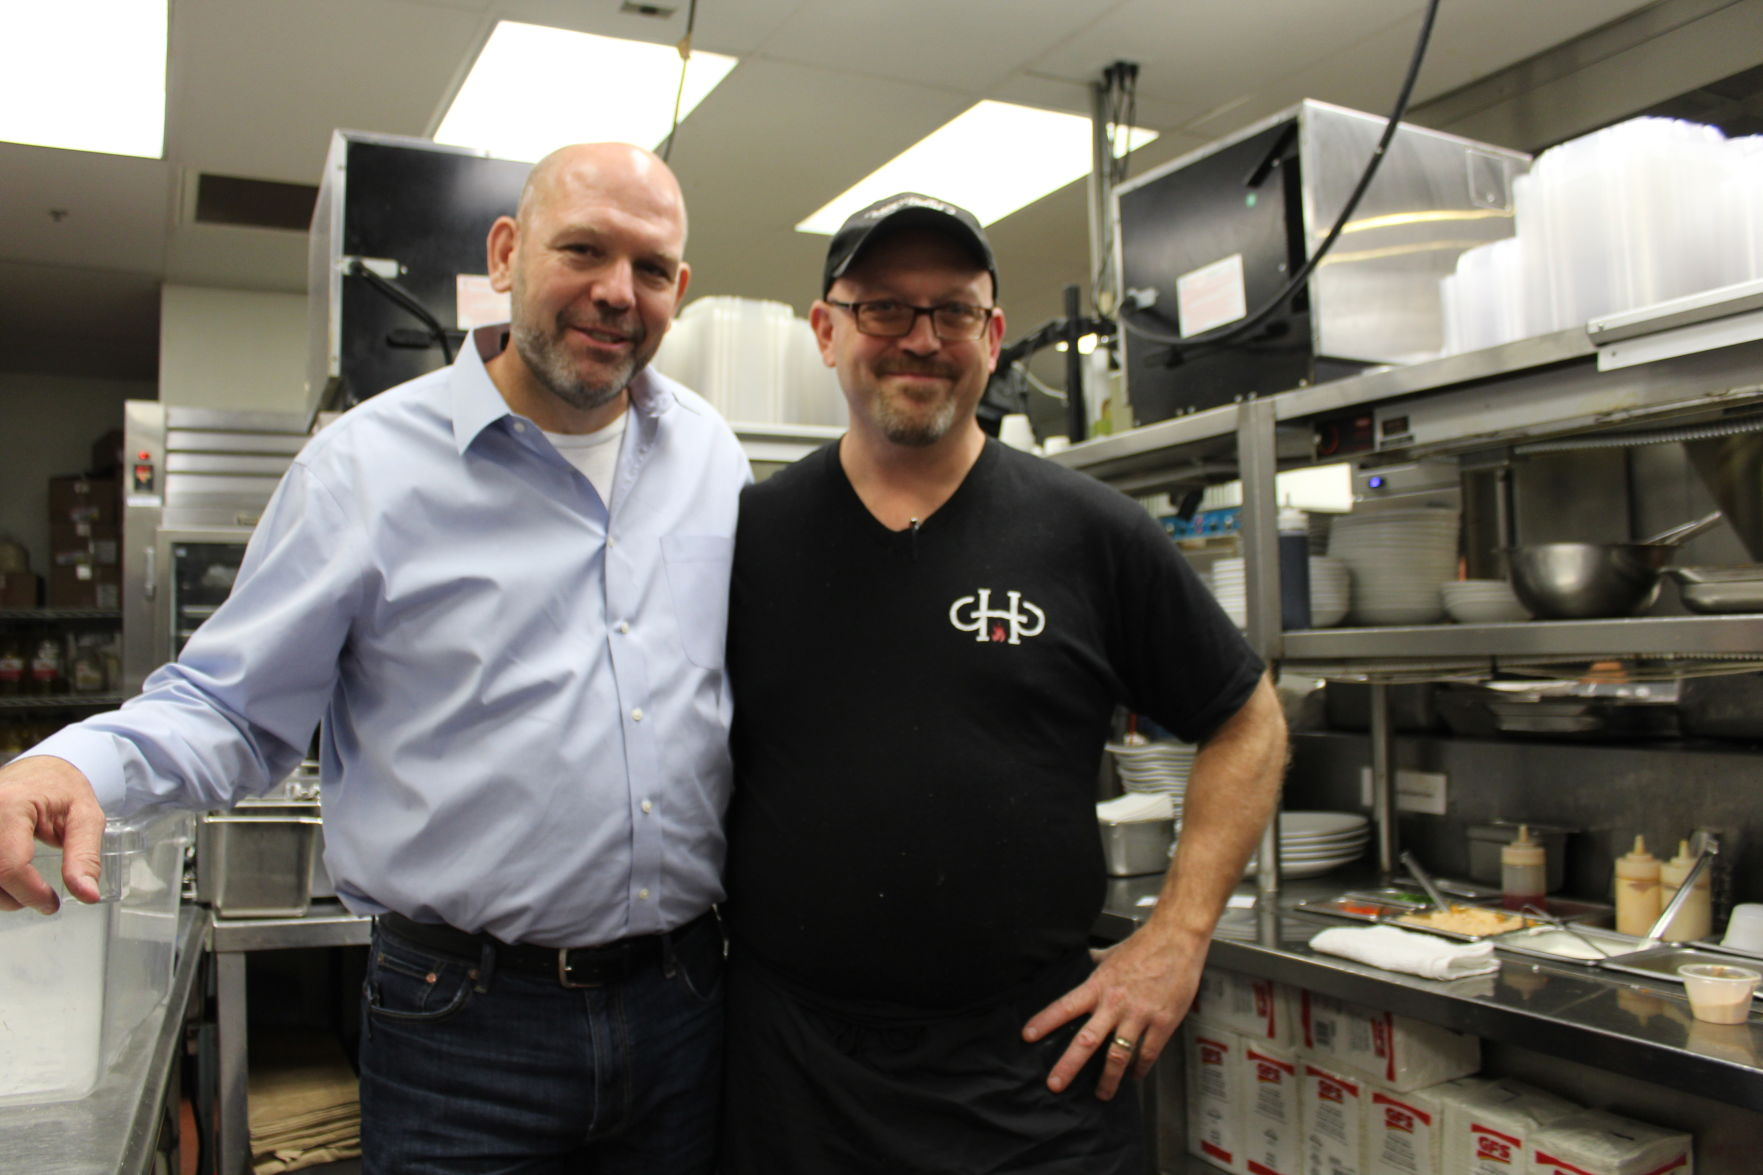 <p>Green Hills Grille's owner Steven Smithing, left, and his broth- er Christopher Smithing, worked at the original location before it closed in 2008. Christopher now serves as head chef. Photo by Rover/Dylan Skye Aycock</p>